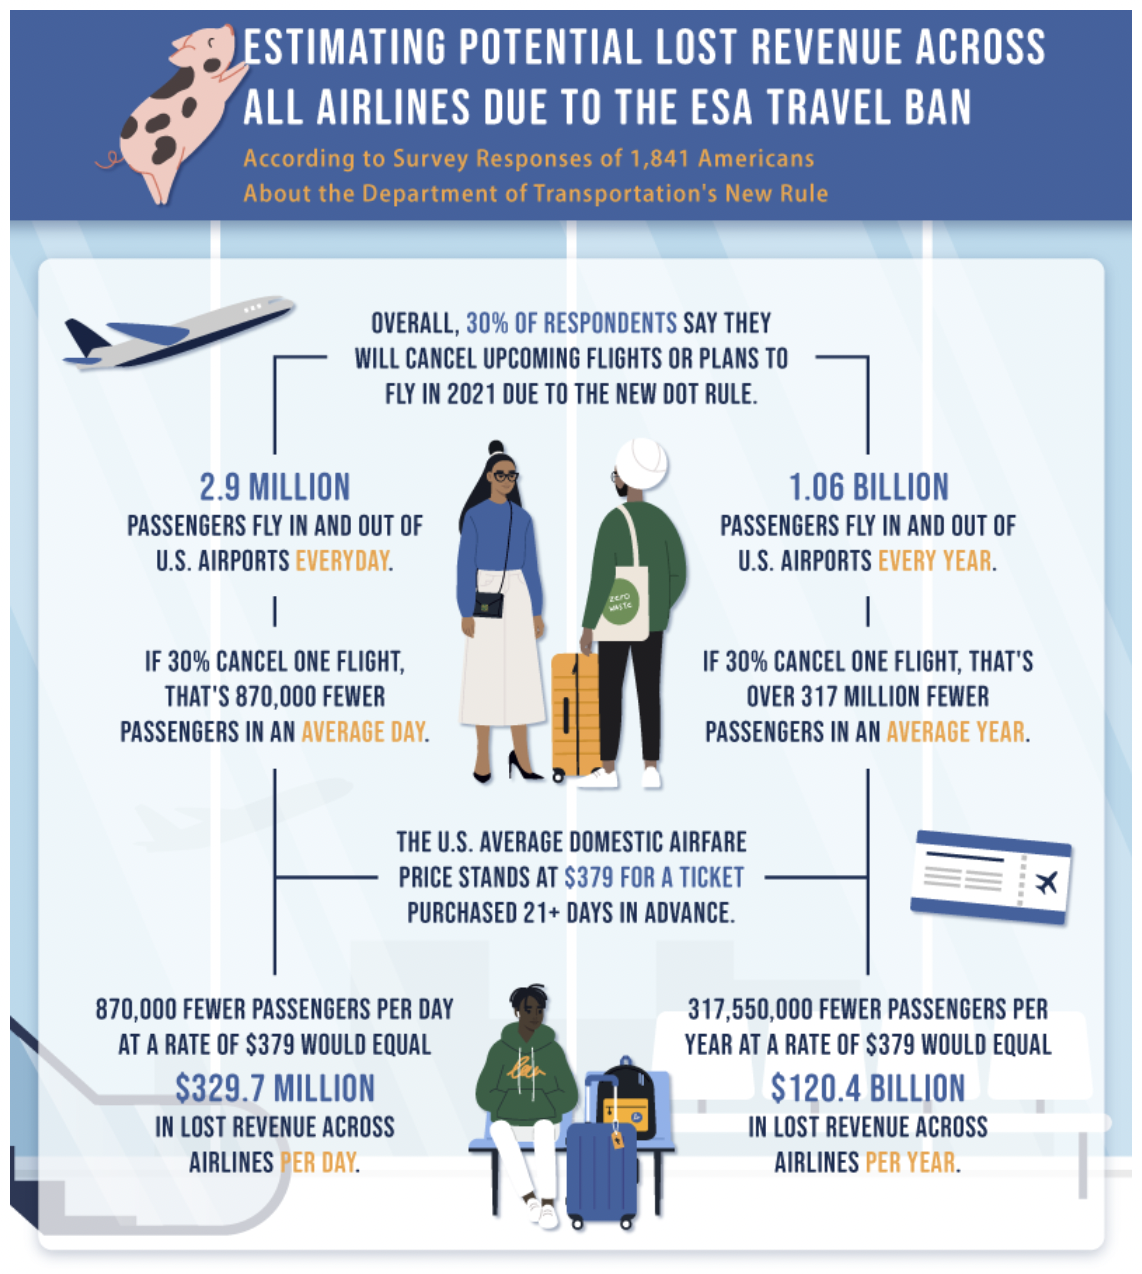 A graphic on estimating potential lost revenue across all airlines due to the ESA travel ban